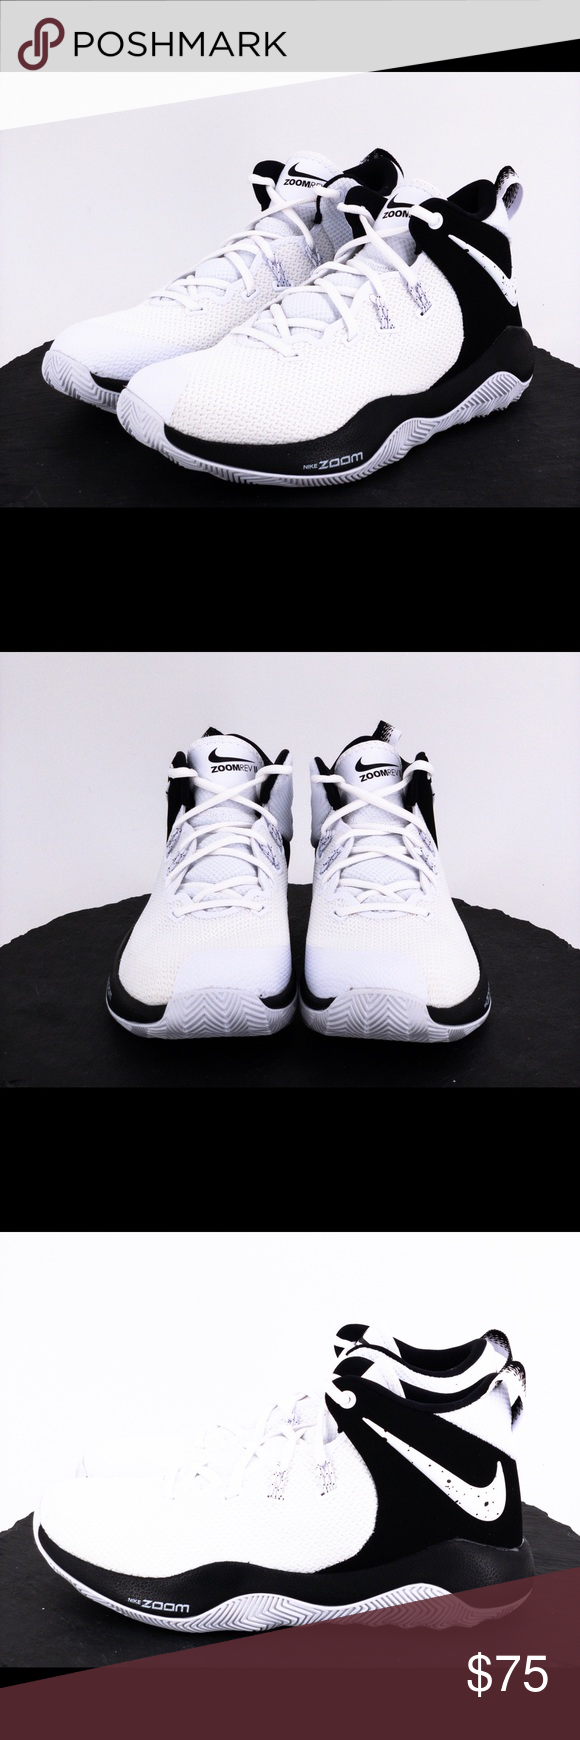 8dc86b9e71ec Nike Zoom Rev II mens basketball shoes size 7.5 The product you are  purchasing is a